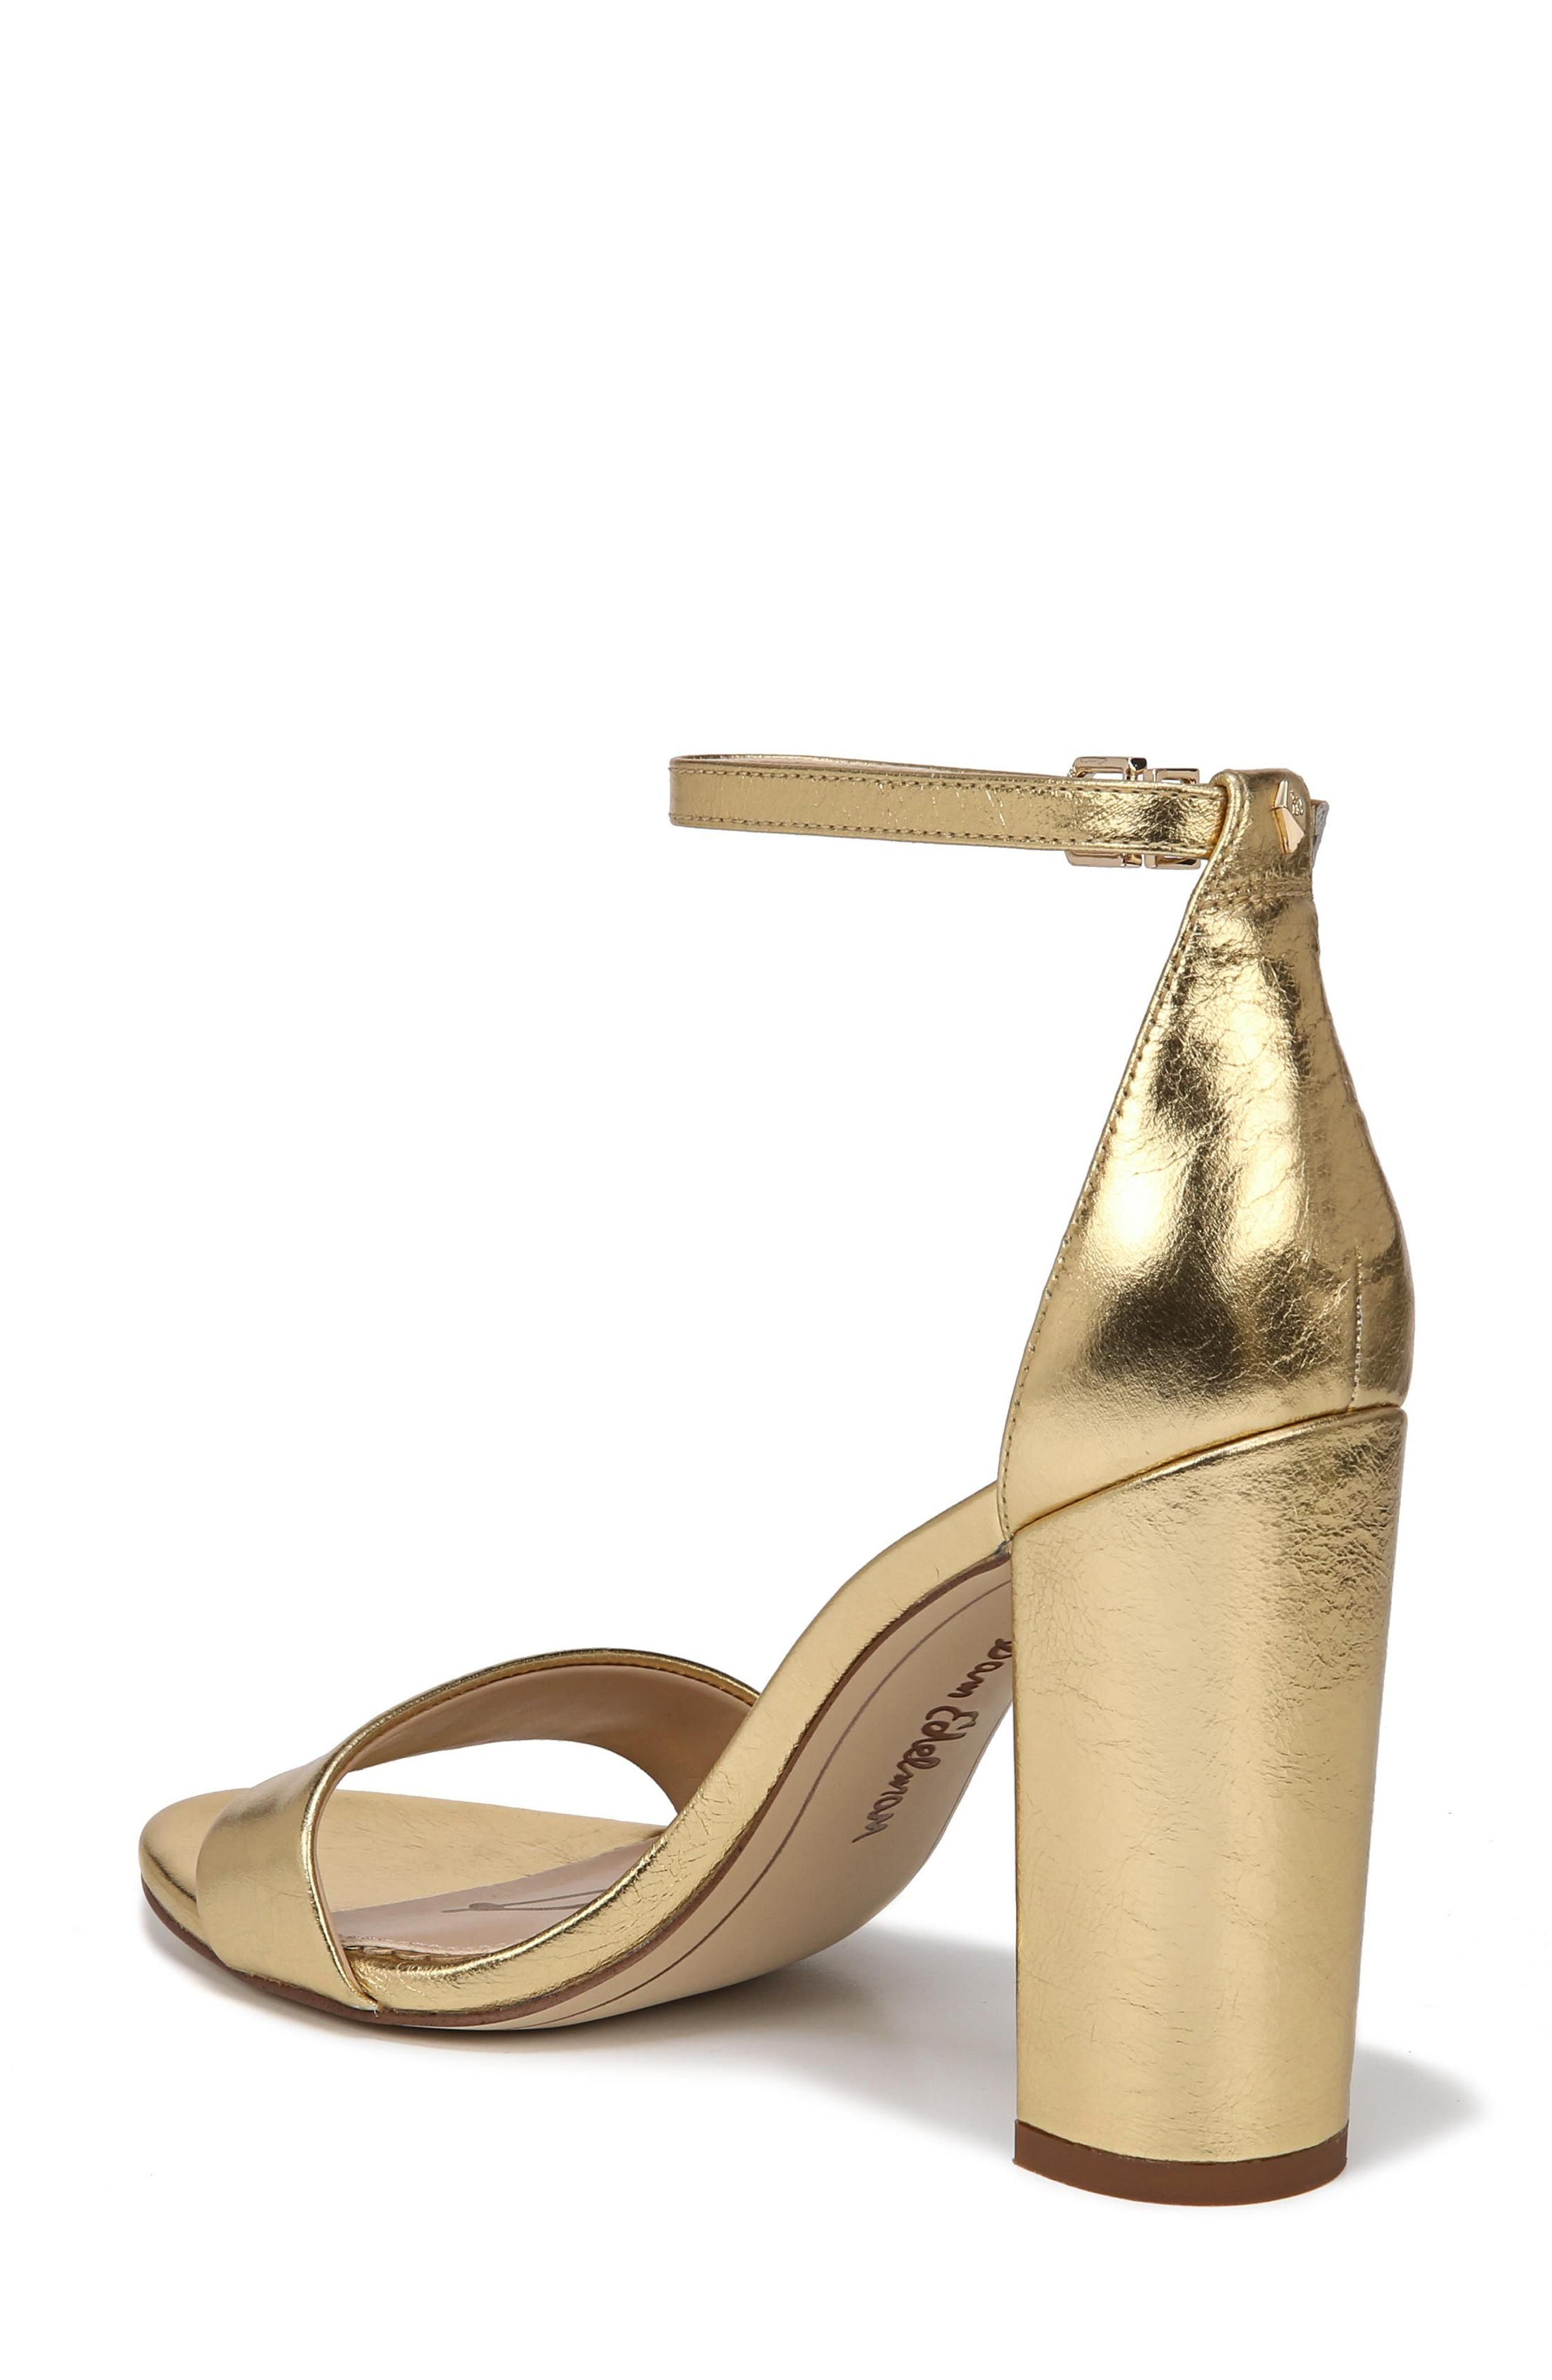 Yaro Ankle Strap Sandal,                             Alternate thumbnail 2, color,                             Bright Gold Leather